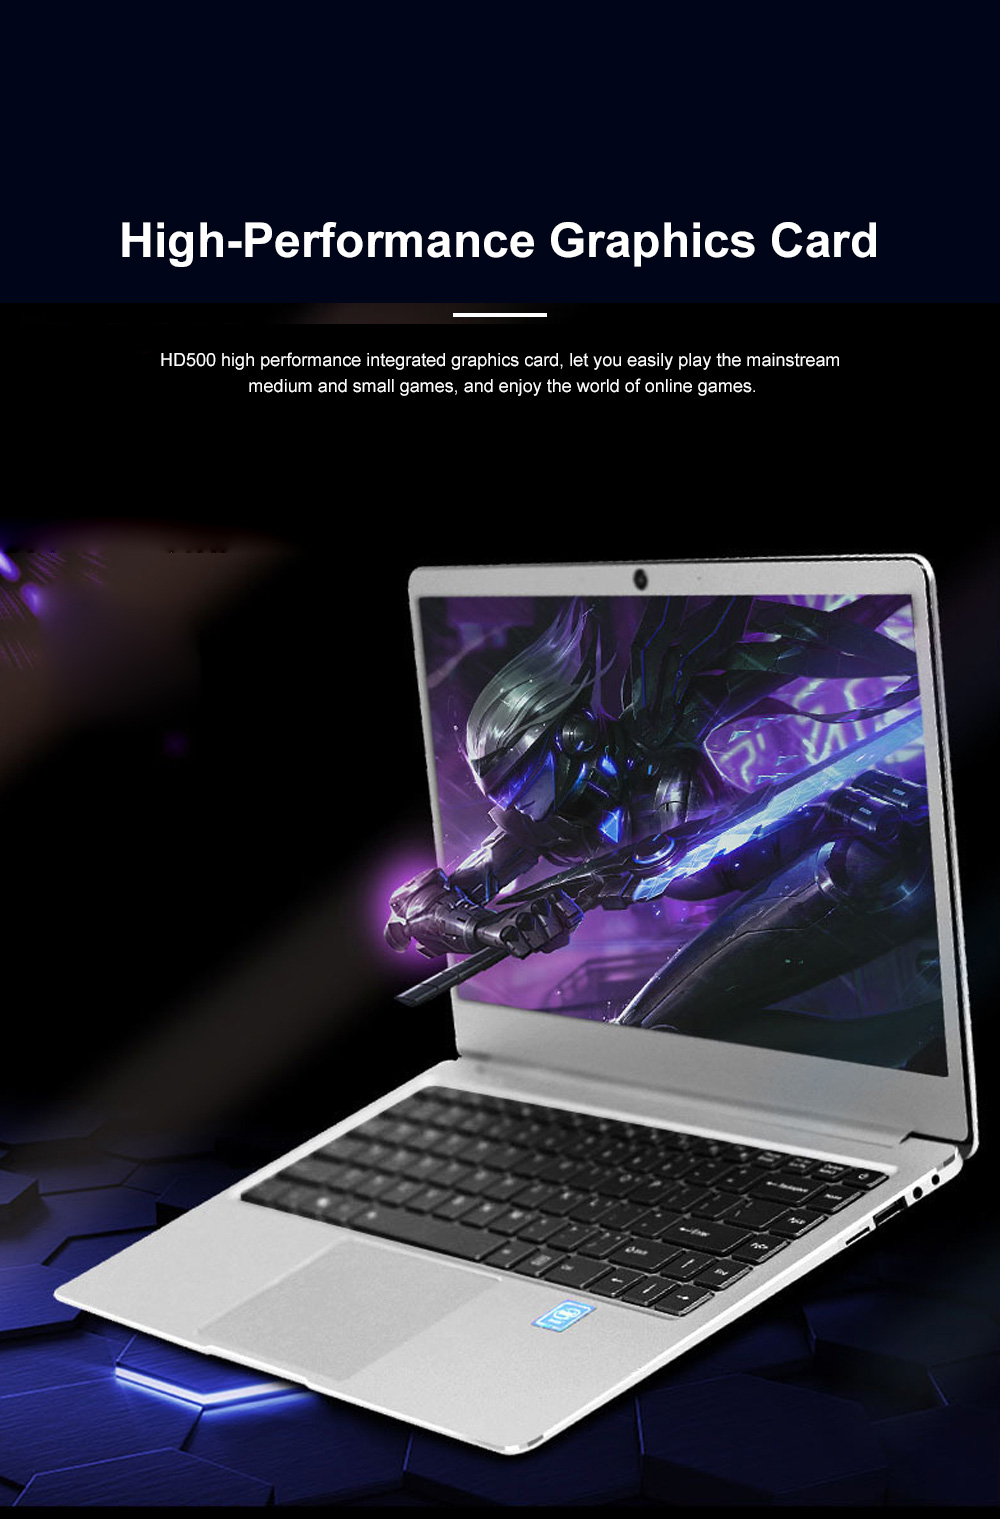 I4 Inch N3450 Laptop Intel Quad-Core ProBook with 1920*1080 HD Resolution Ultra Slim Notebook with Wide View Angle 4